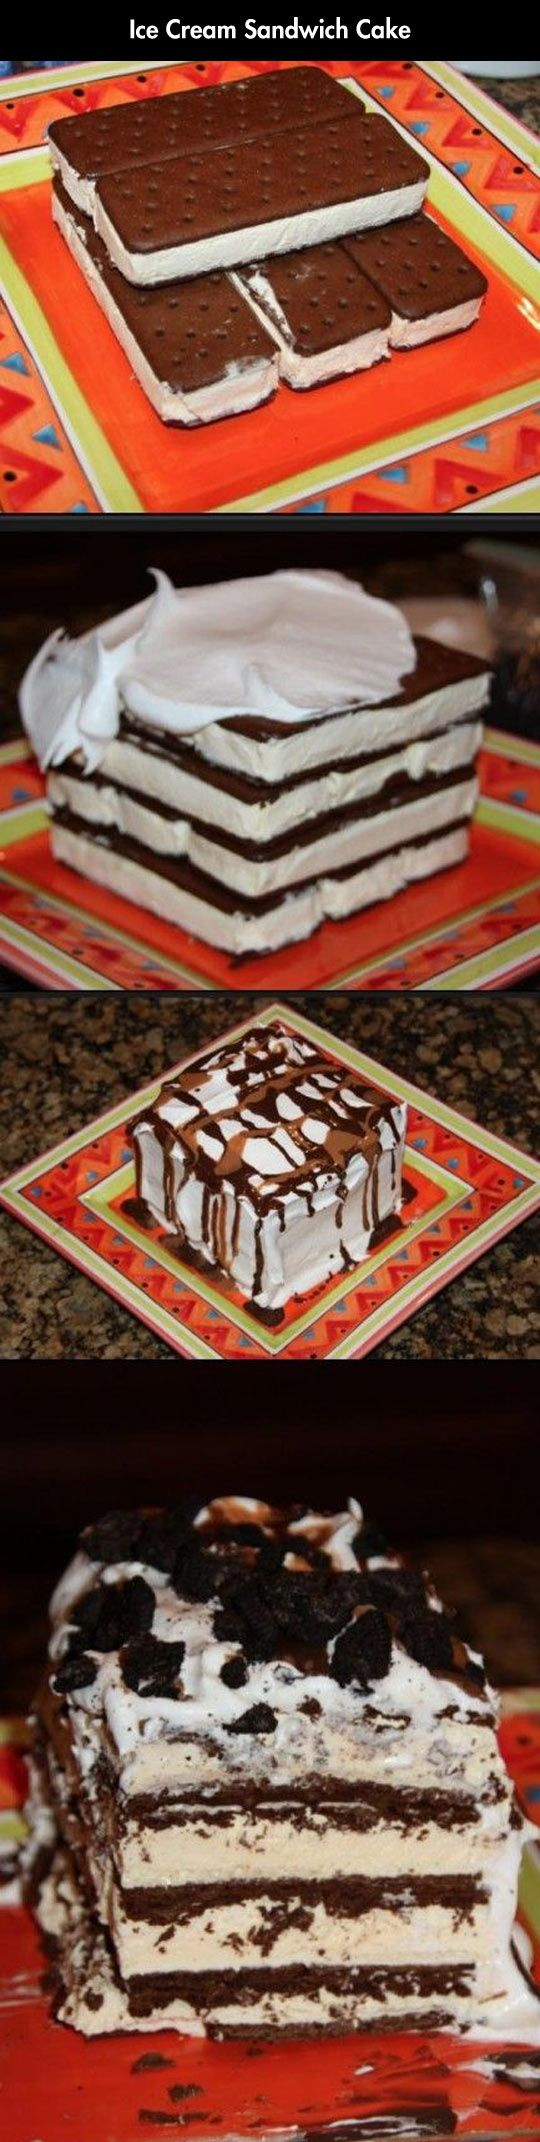 Sandwich Cake Is The Best Type Of Cake... David wants this for his birthday. Maybe I'll just try to make it for him because he's such an amazing guy.